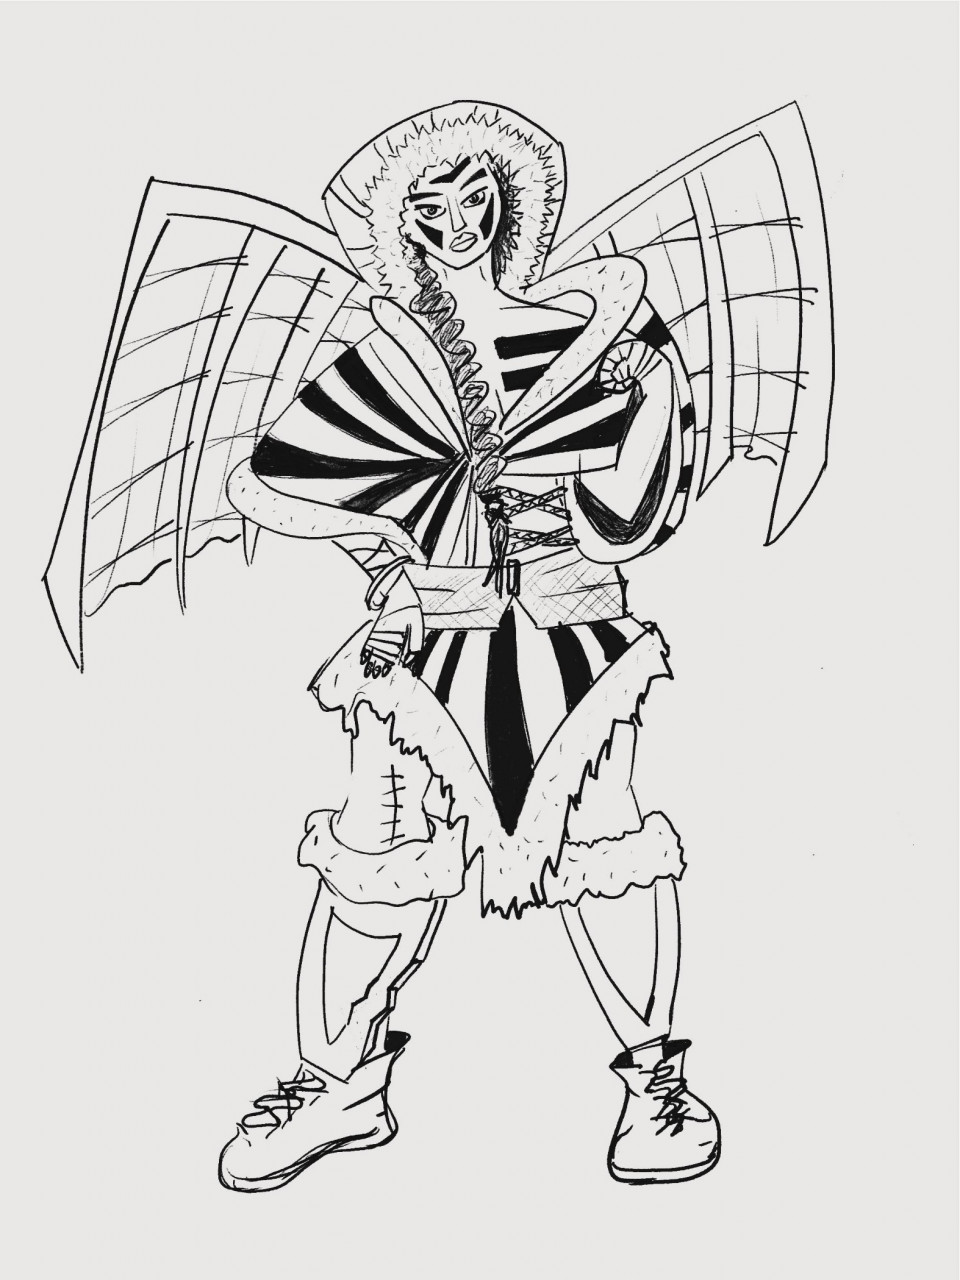 I would never in a million years have thought to create this character.She is a young adult female, intended for a moba game (had to look that up). prize fighter Amazon tribe woman armed with a wing suit, sneaky and walks with a limp. Sneaky, gave her the hoodLimp gave her the scar on her legprize fighter, supposed to be a fist, seemed strong at the time but looking again looks a bit weak.